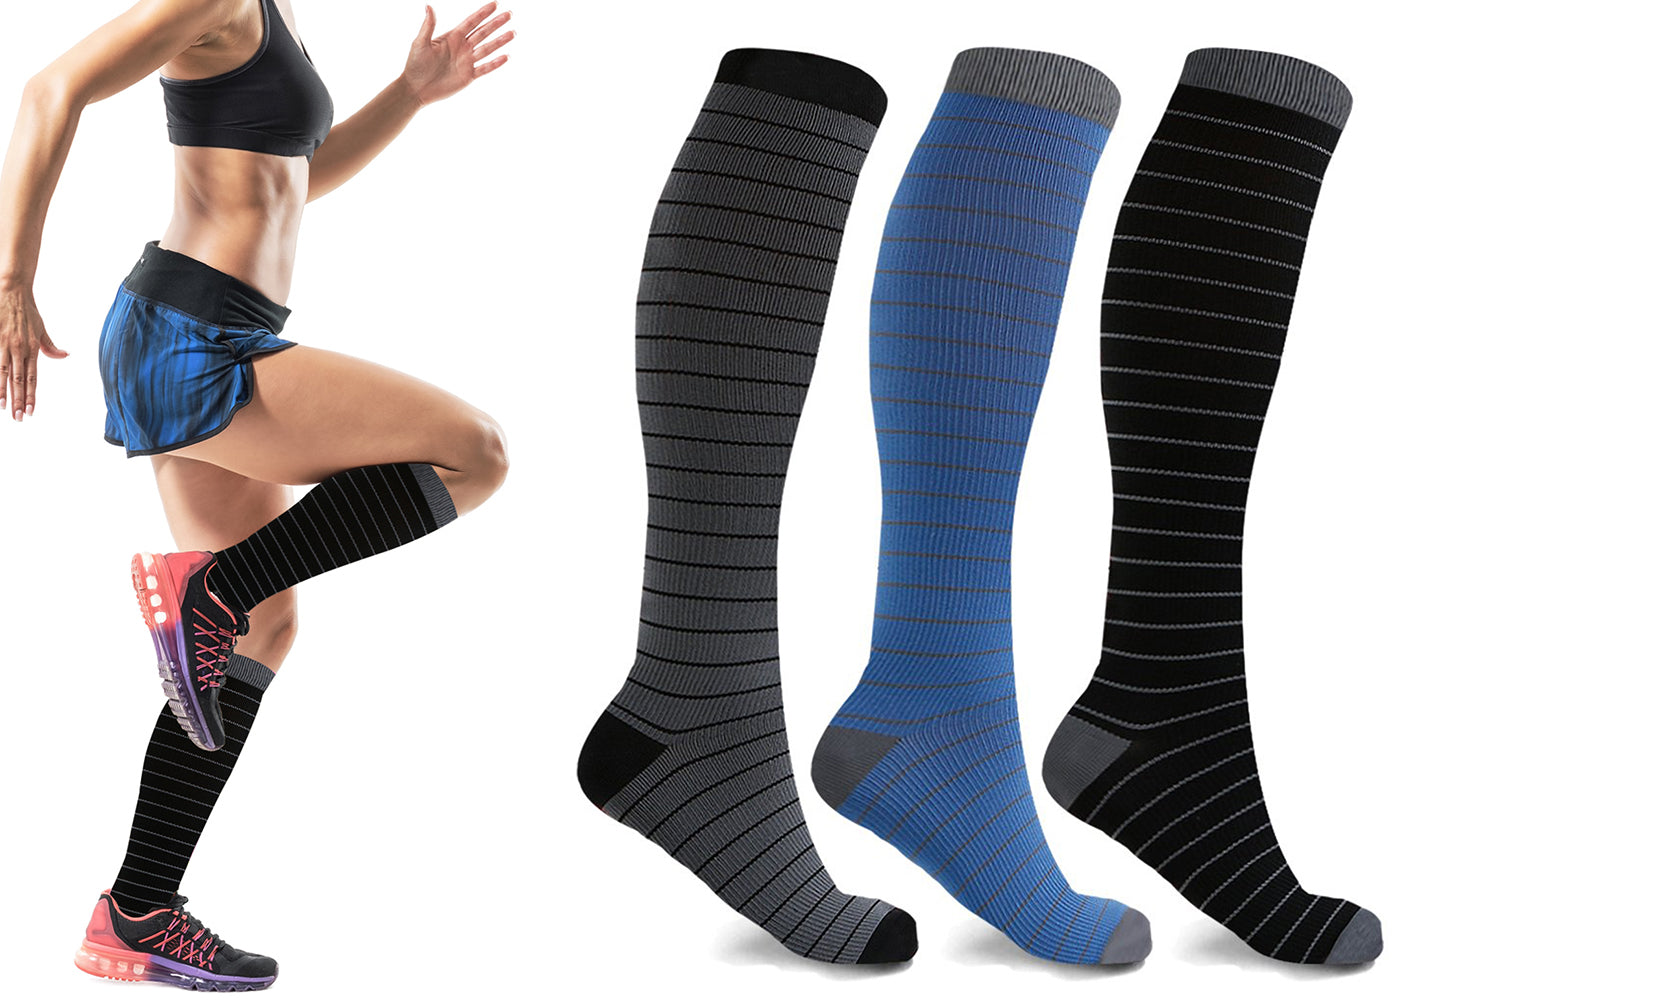 3-Pairs : High Energy Expressive Compression Socks